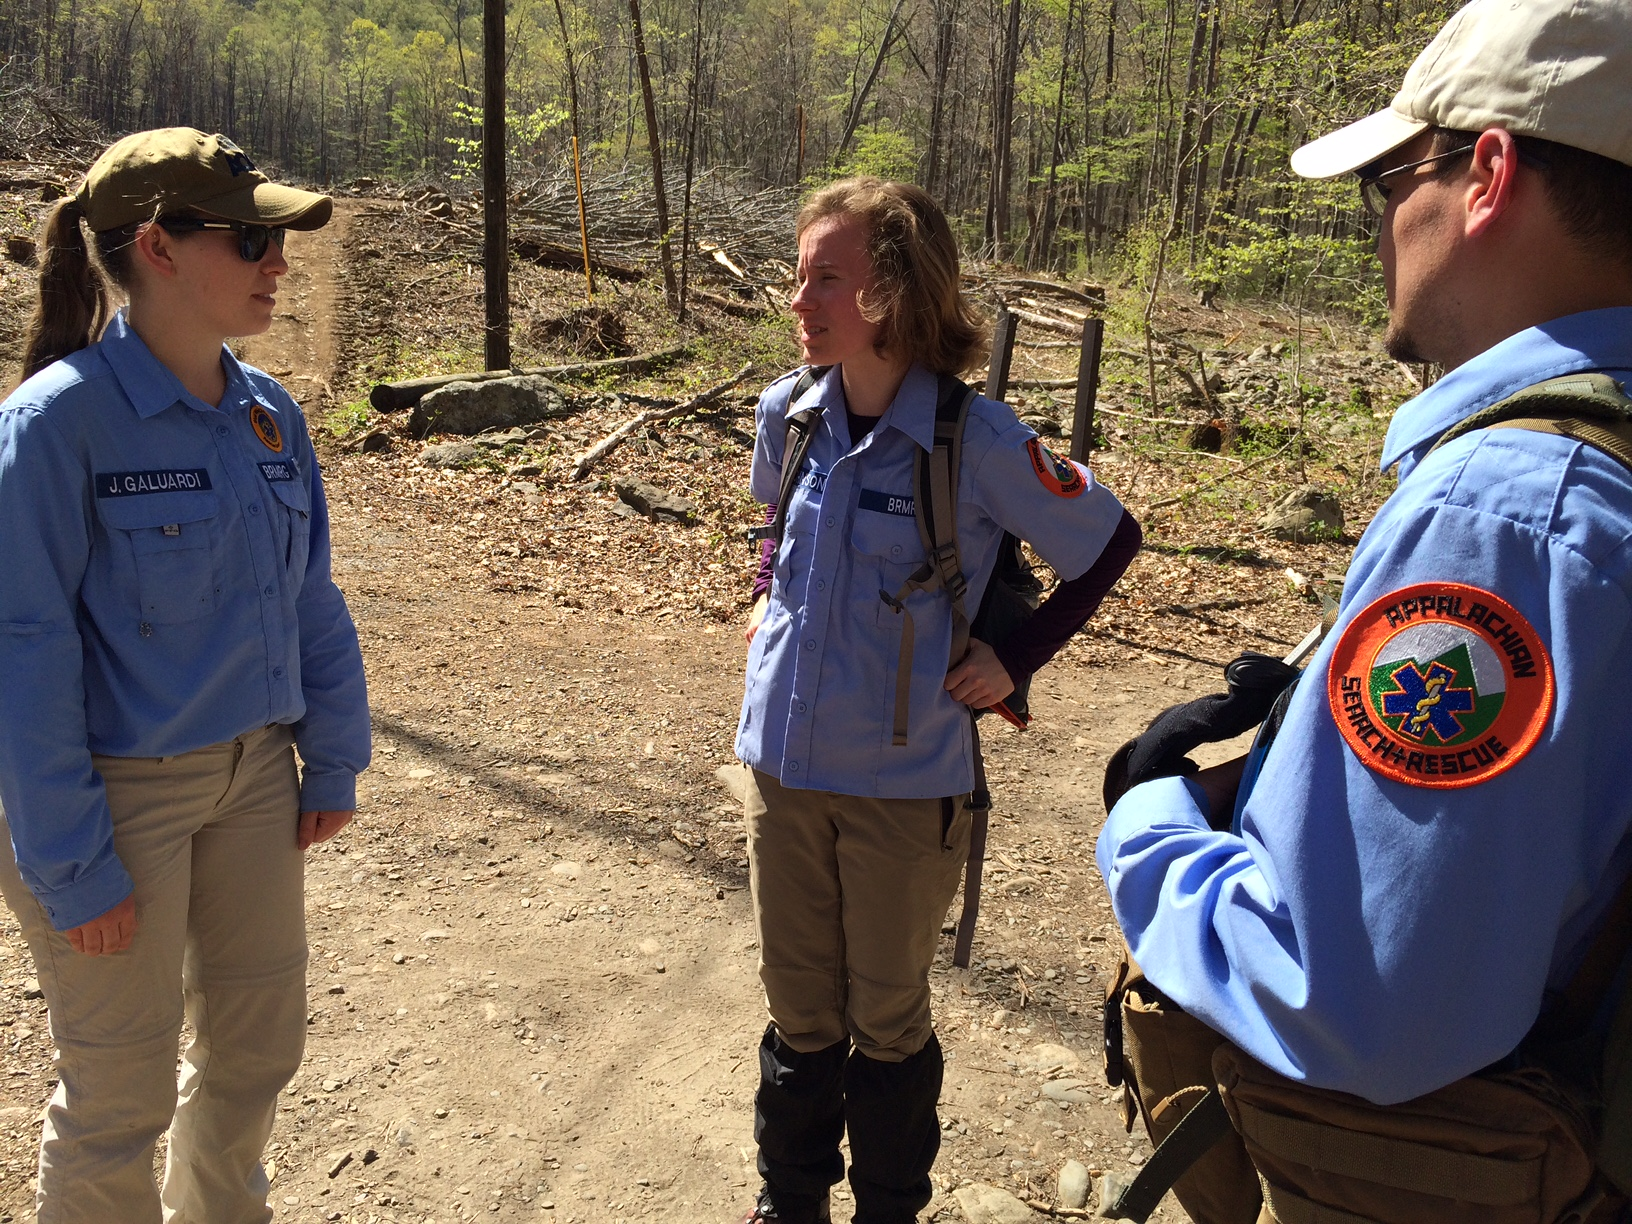 Search focuses near Shenandoah National Park trail for missing Woodbridge woman